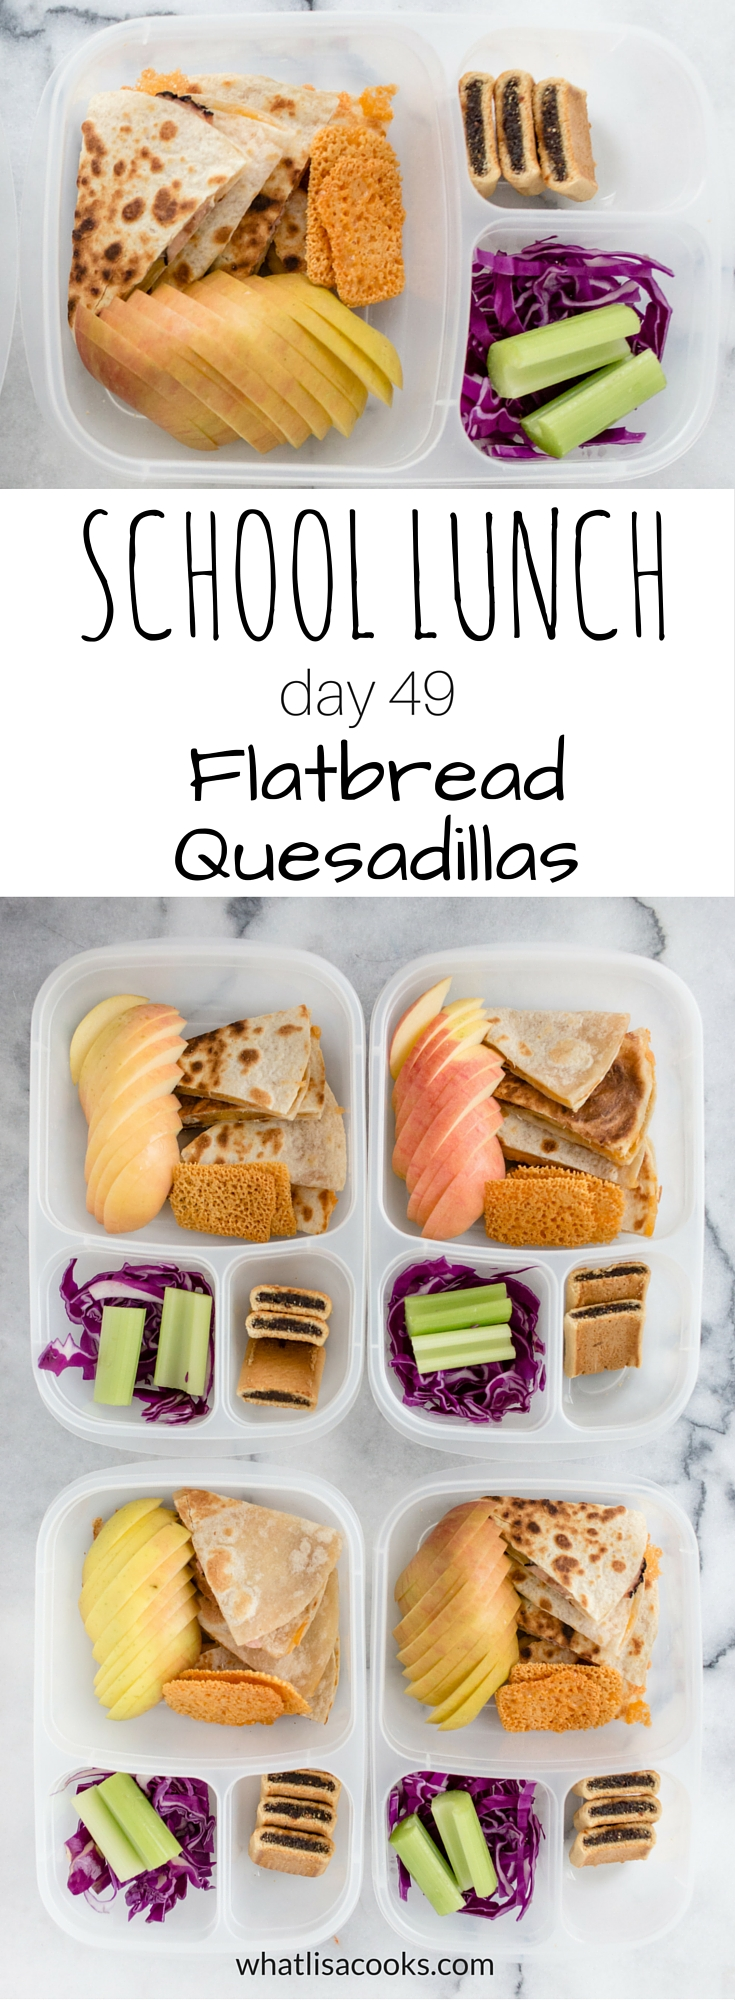 School lunch day 49 - flatbread quesadillas - from whatlisacooks.com